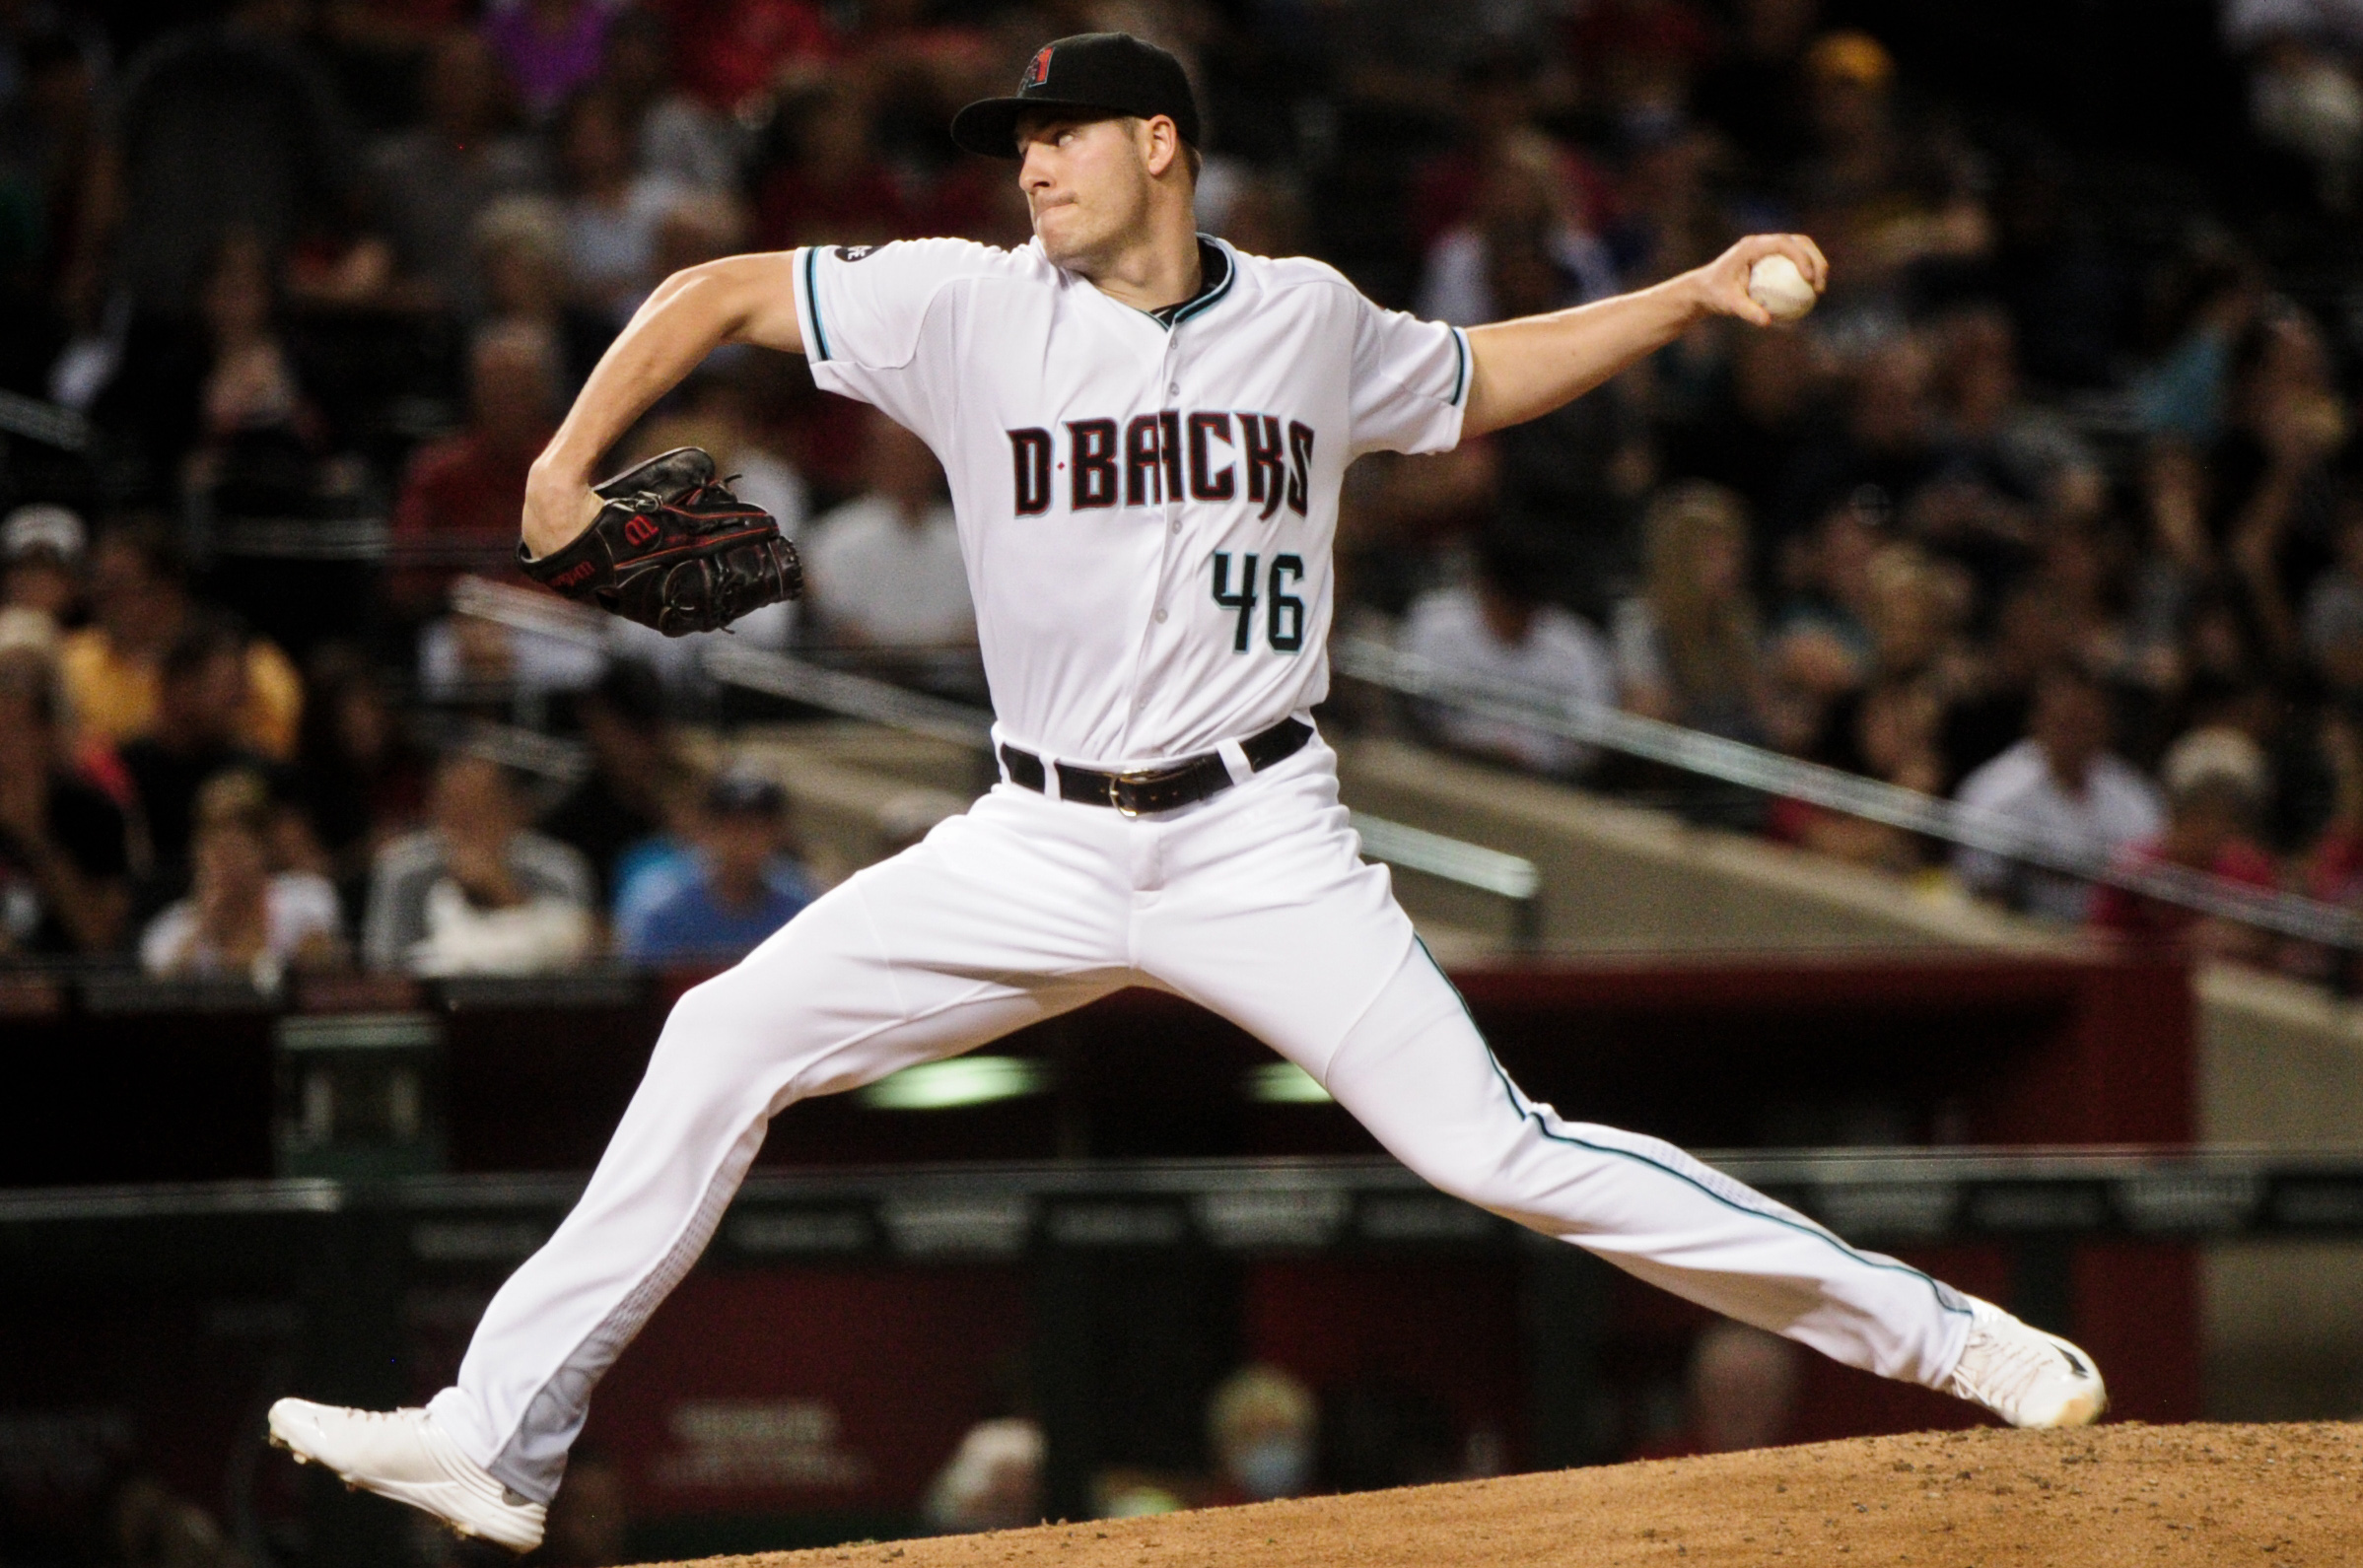 Arizona Diamondbacks: Patrick Corbin remains in the running for a rotation spot